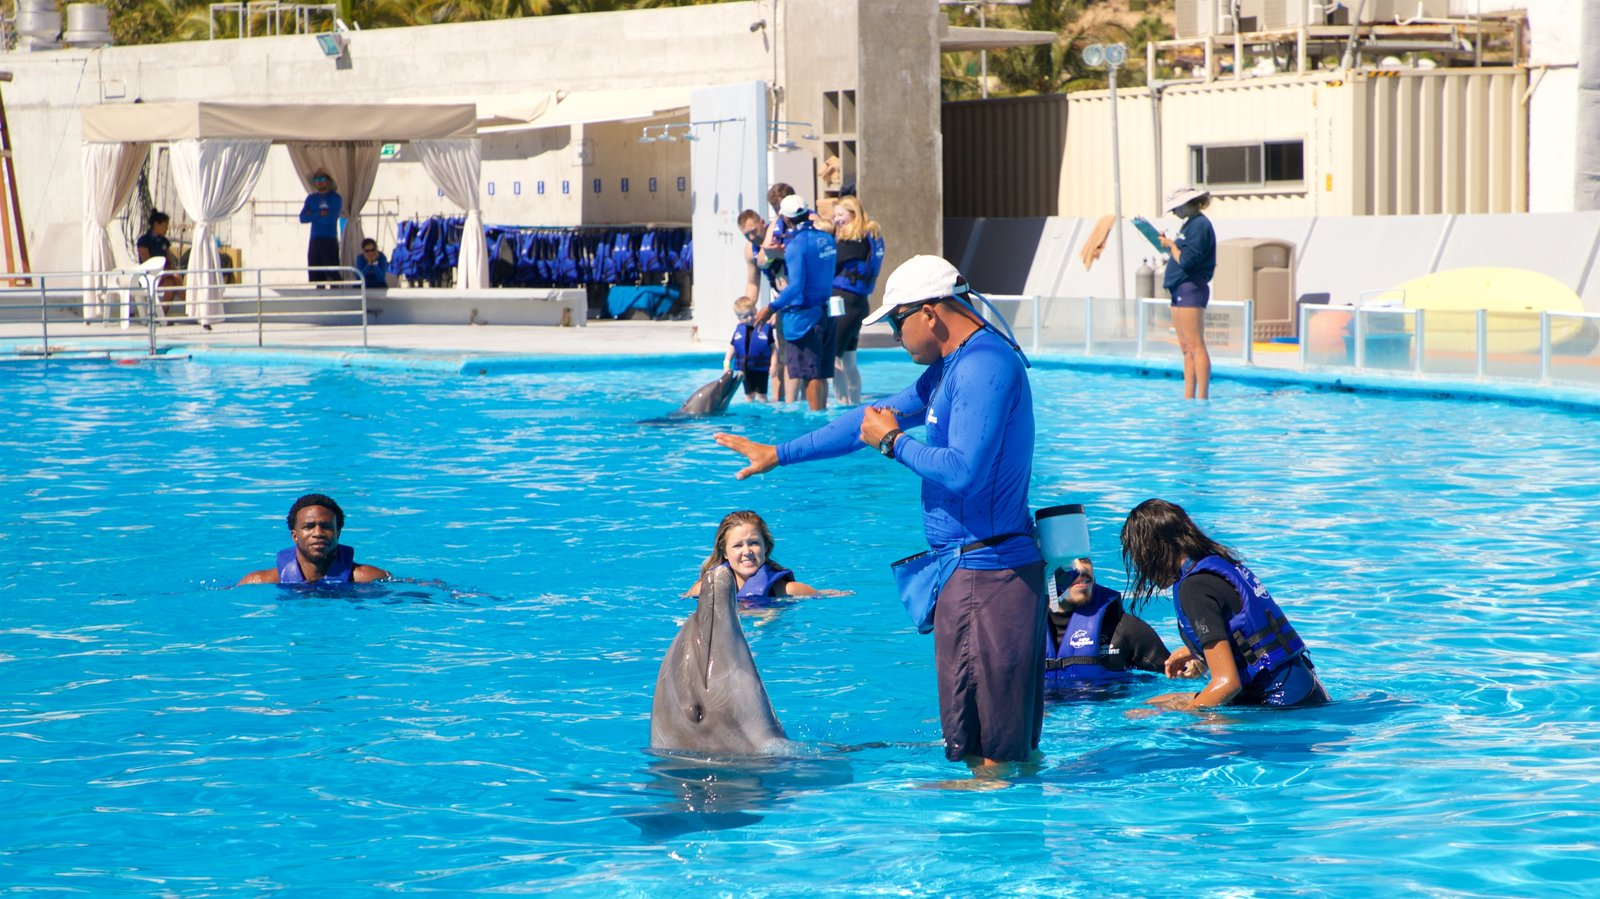 Cabo Dolphins showing a pool and marine life as well as a small group of people